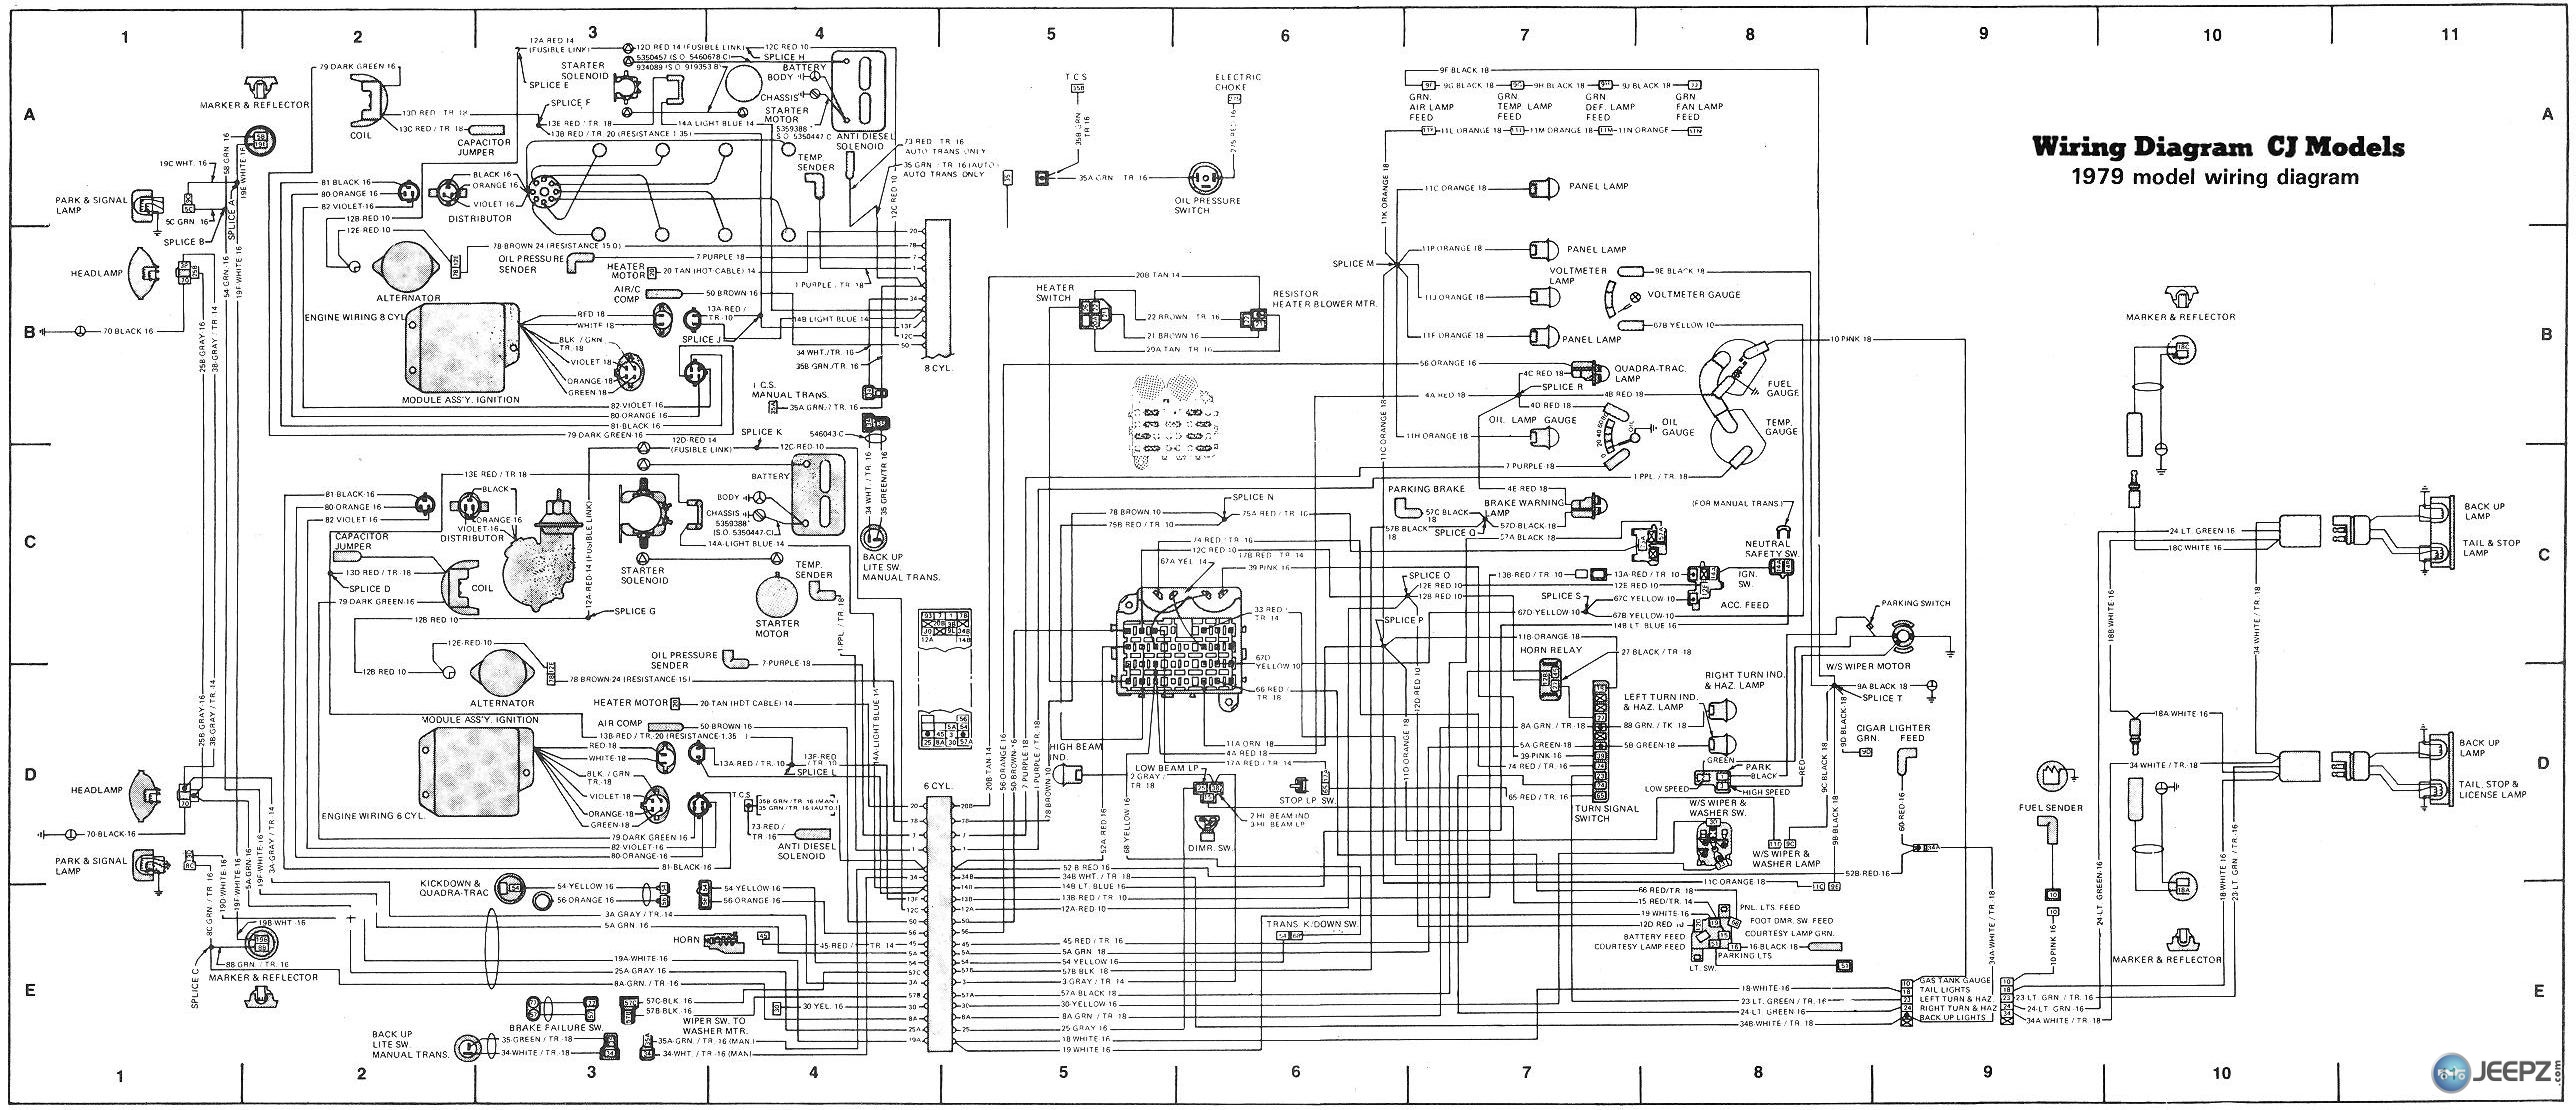 Astounding Wiring Diagram For Cj8 Blog Diagram Schema Wiring Cloud Hisonuggs Outletorg